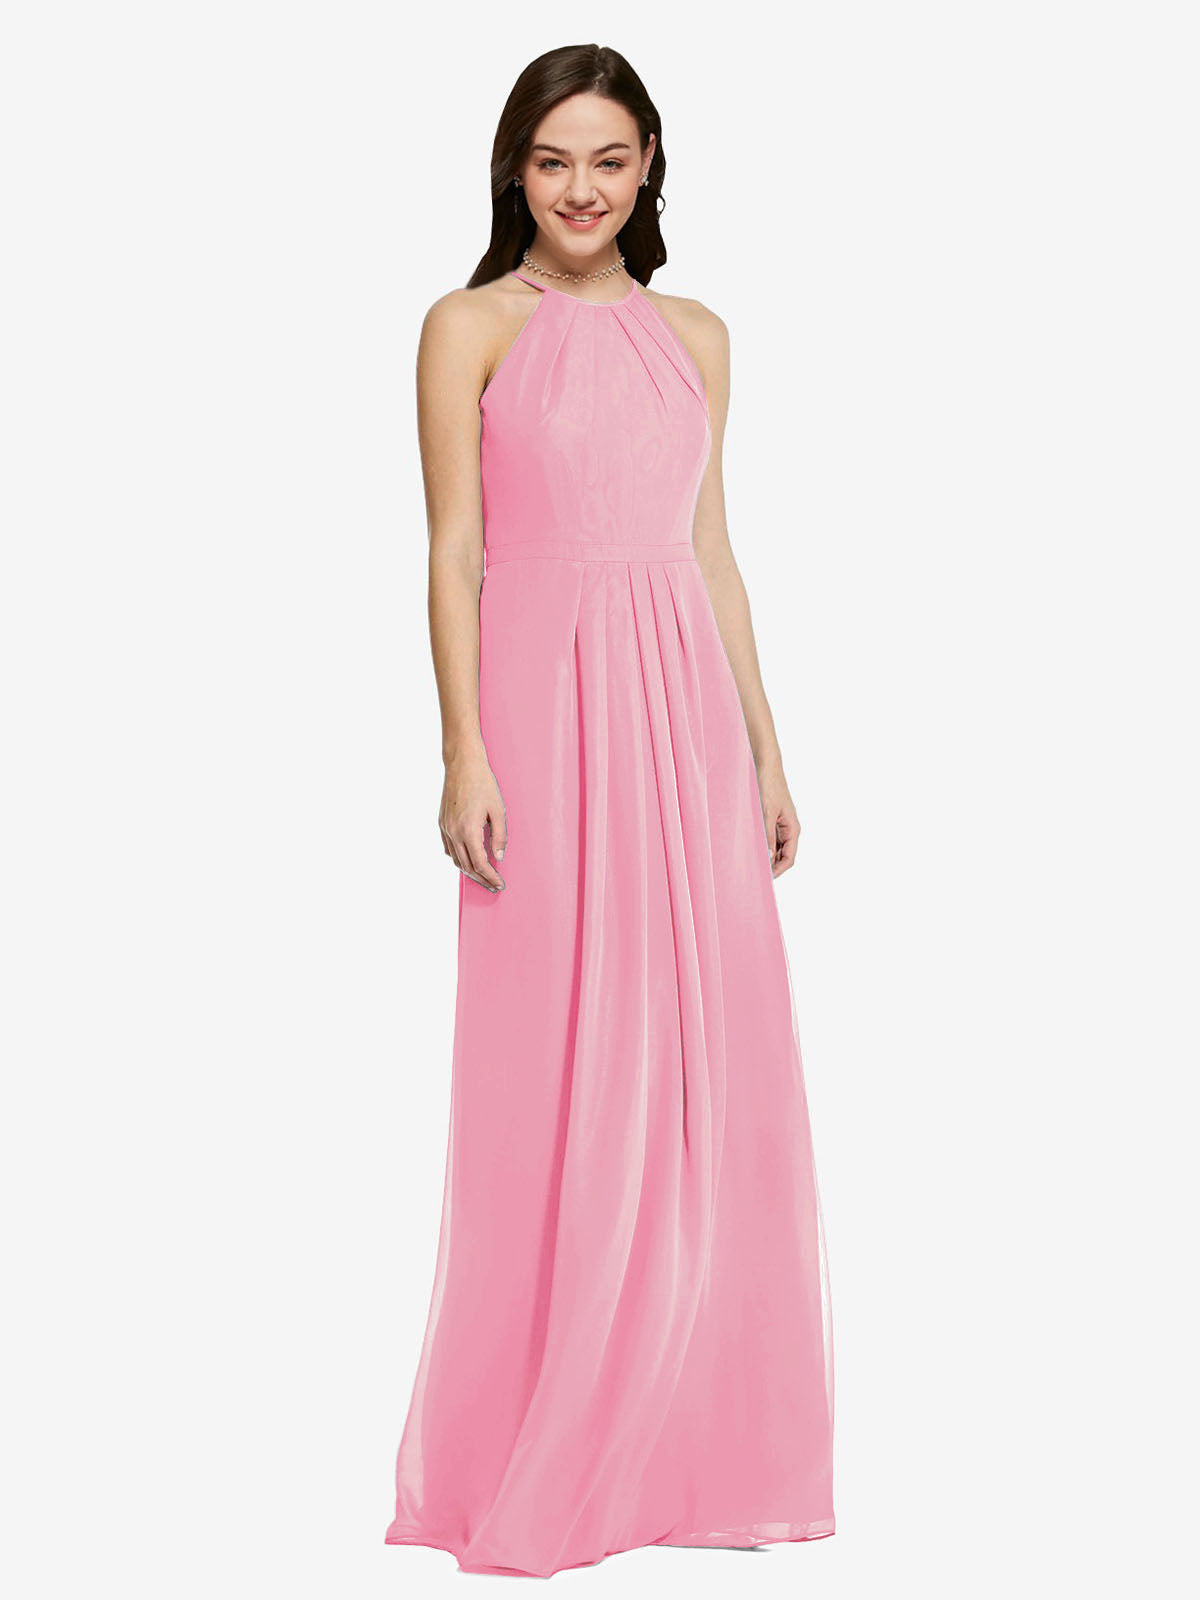 Long Sheath High Neck Halter Sleeveless Hot Pink Chiffon Bridesmaid Dress Koloti